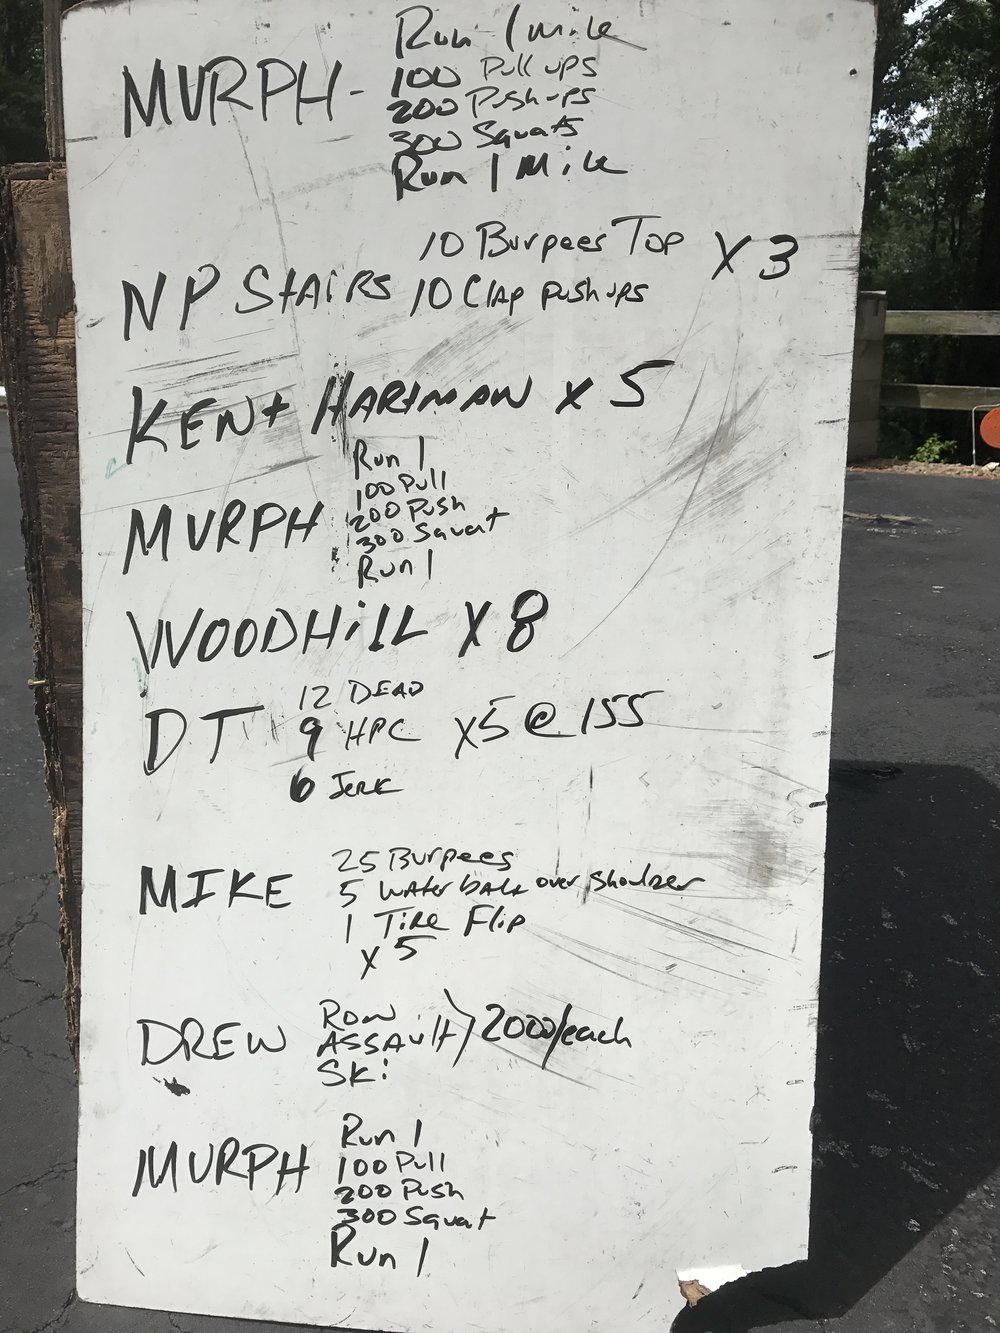 Our 2017 Memorial Day Workout to honor those who served and sacrificed and to wish Mike Drew well on his future endeavors